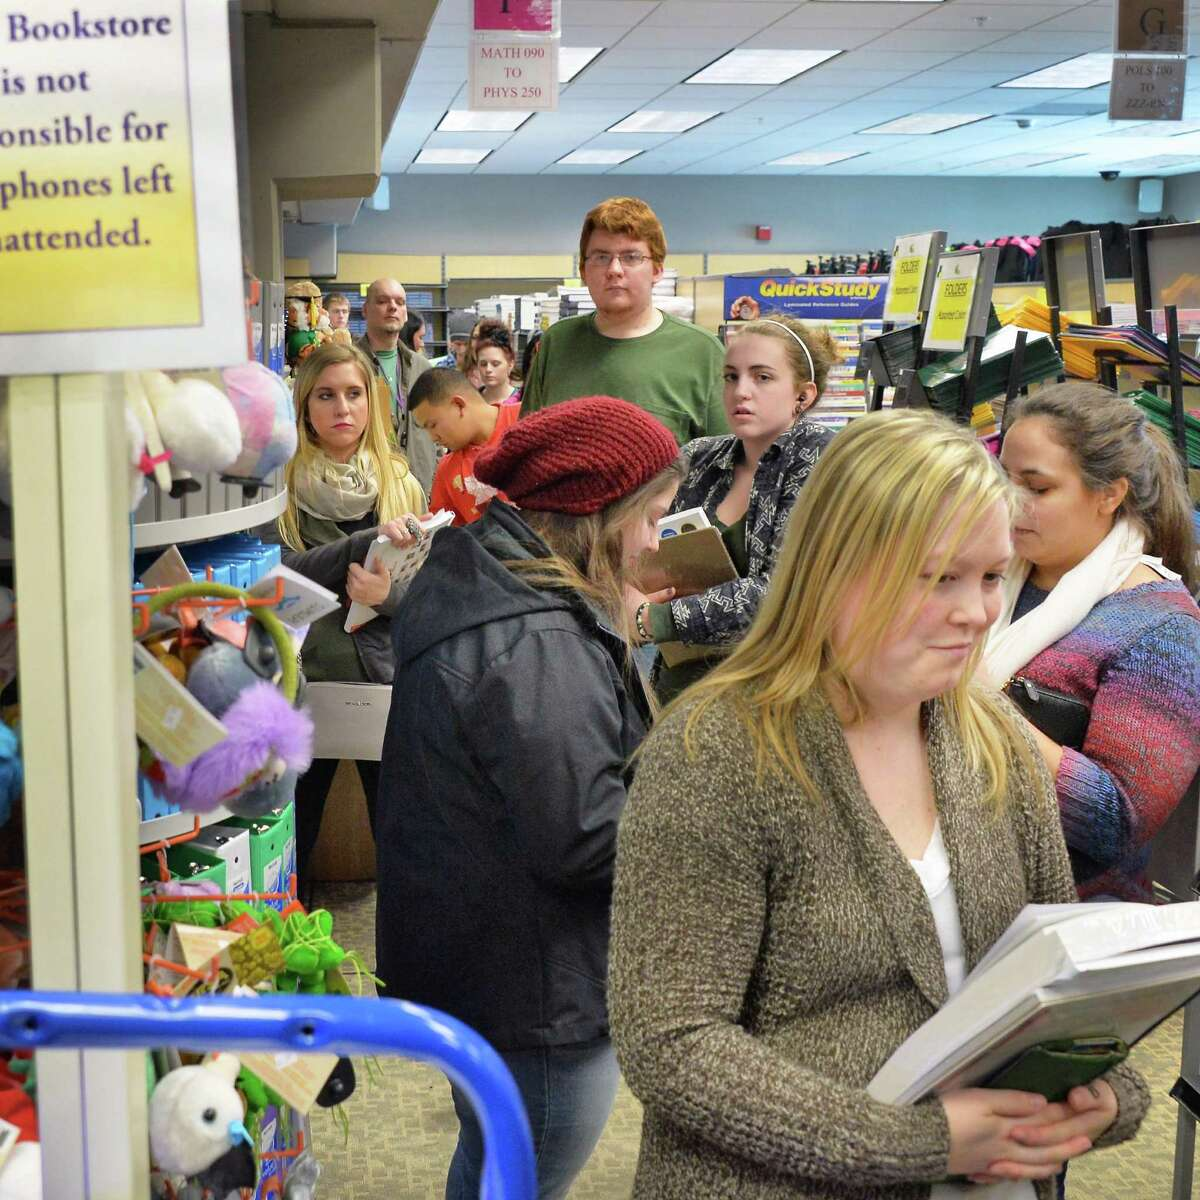 Students wait in a long line at the campus bookstore as the Spring 2016 semester begins at Hudson Valley Community College Tuesday Jan. 19, 2016 in Troy, NY. (John Carl D'Annibale / Times Union)